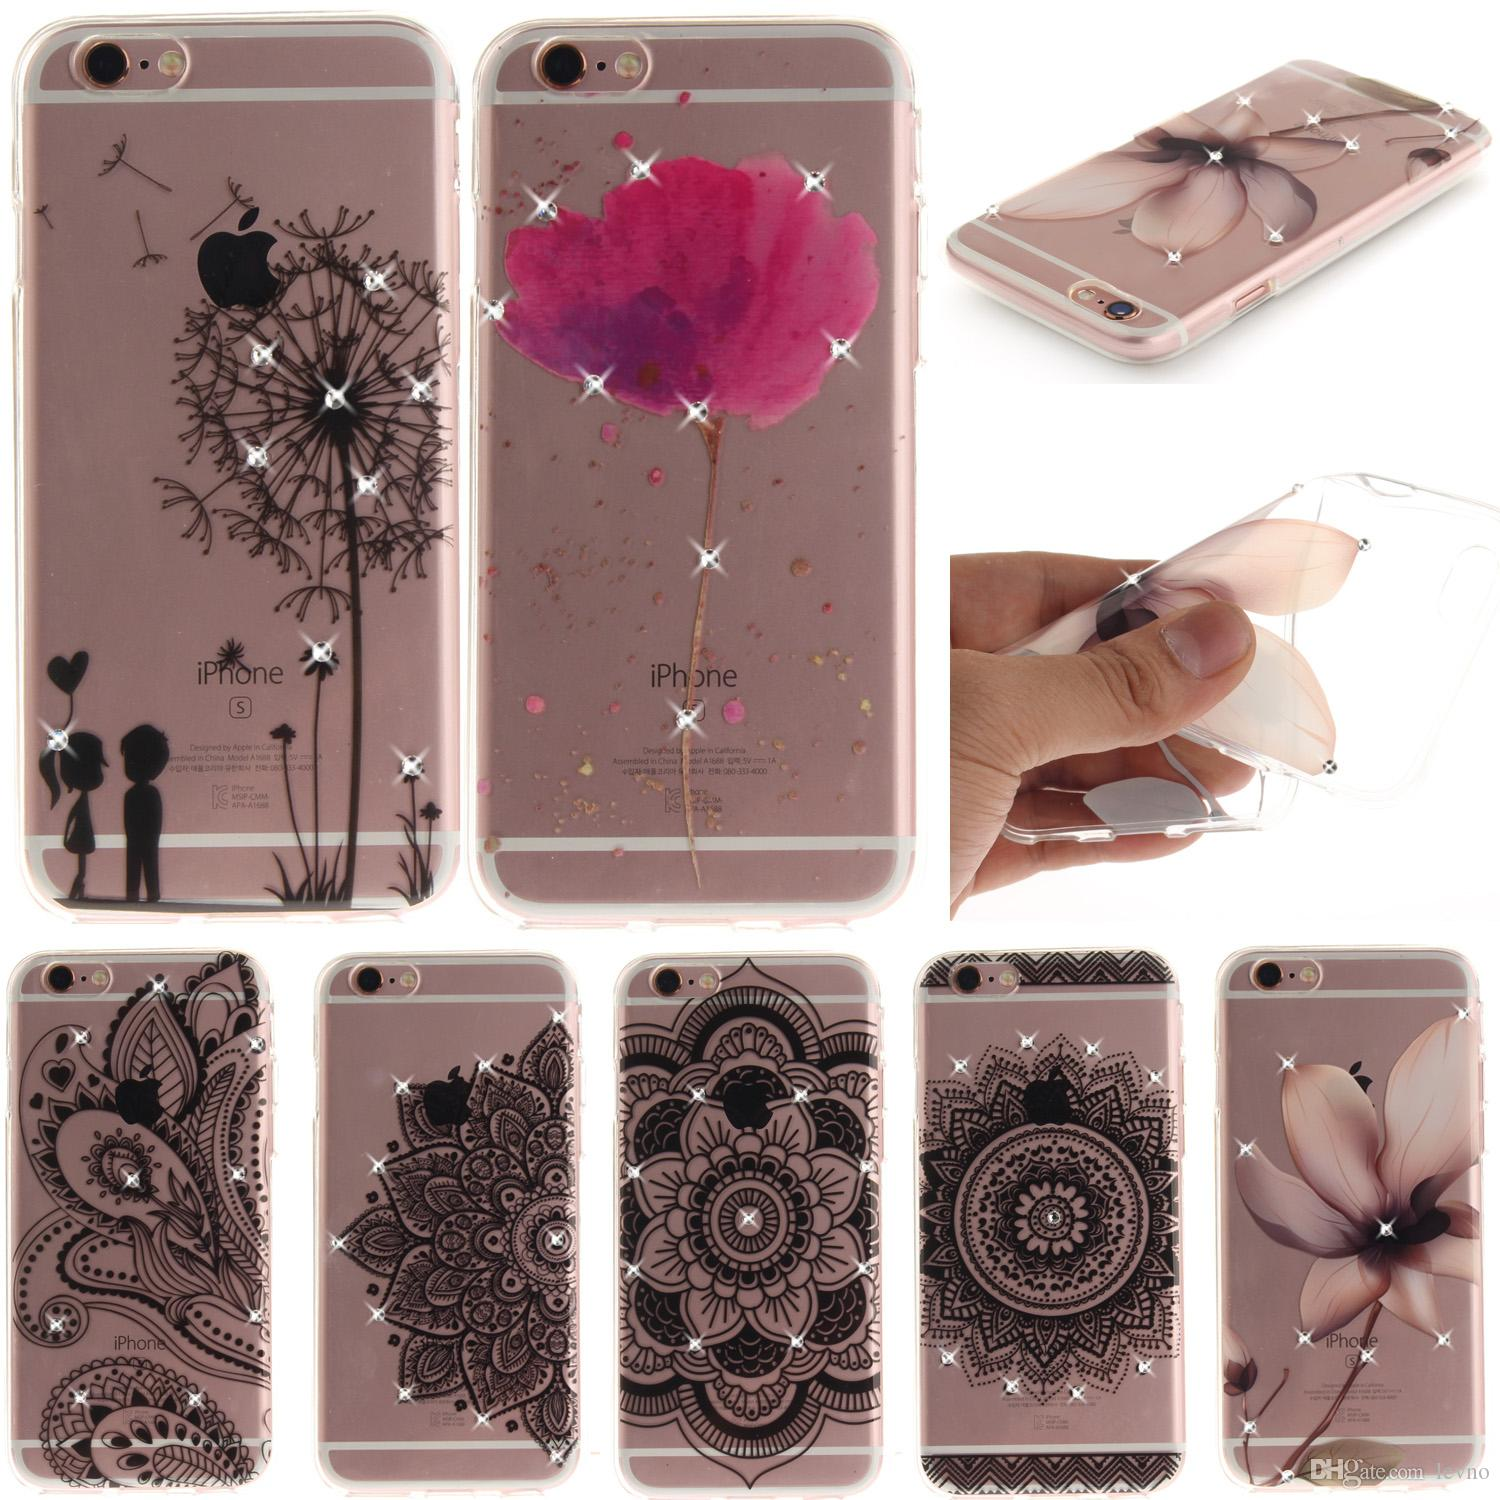 For Iphone 5 Se 6 Case Rhinestone Glitter Silicone Cover Original For Iphone 6s Plus Luxury Crystal Diamond Soft Shell 4 7&5 5 Otter Cell Phone Cases